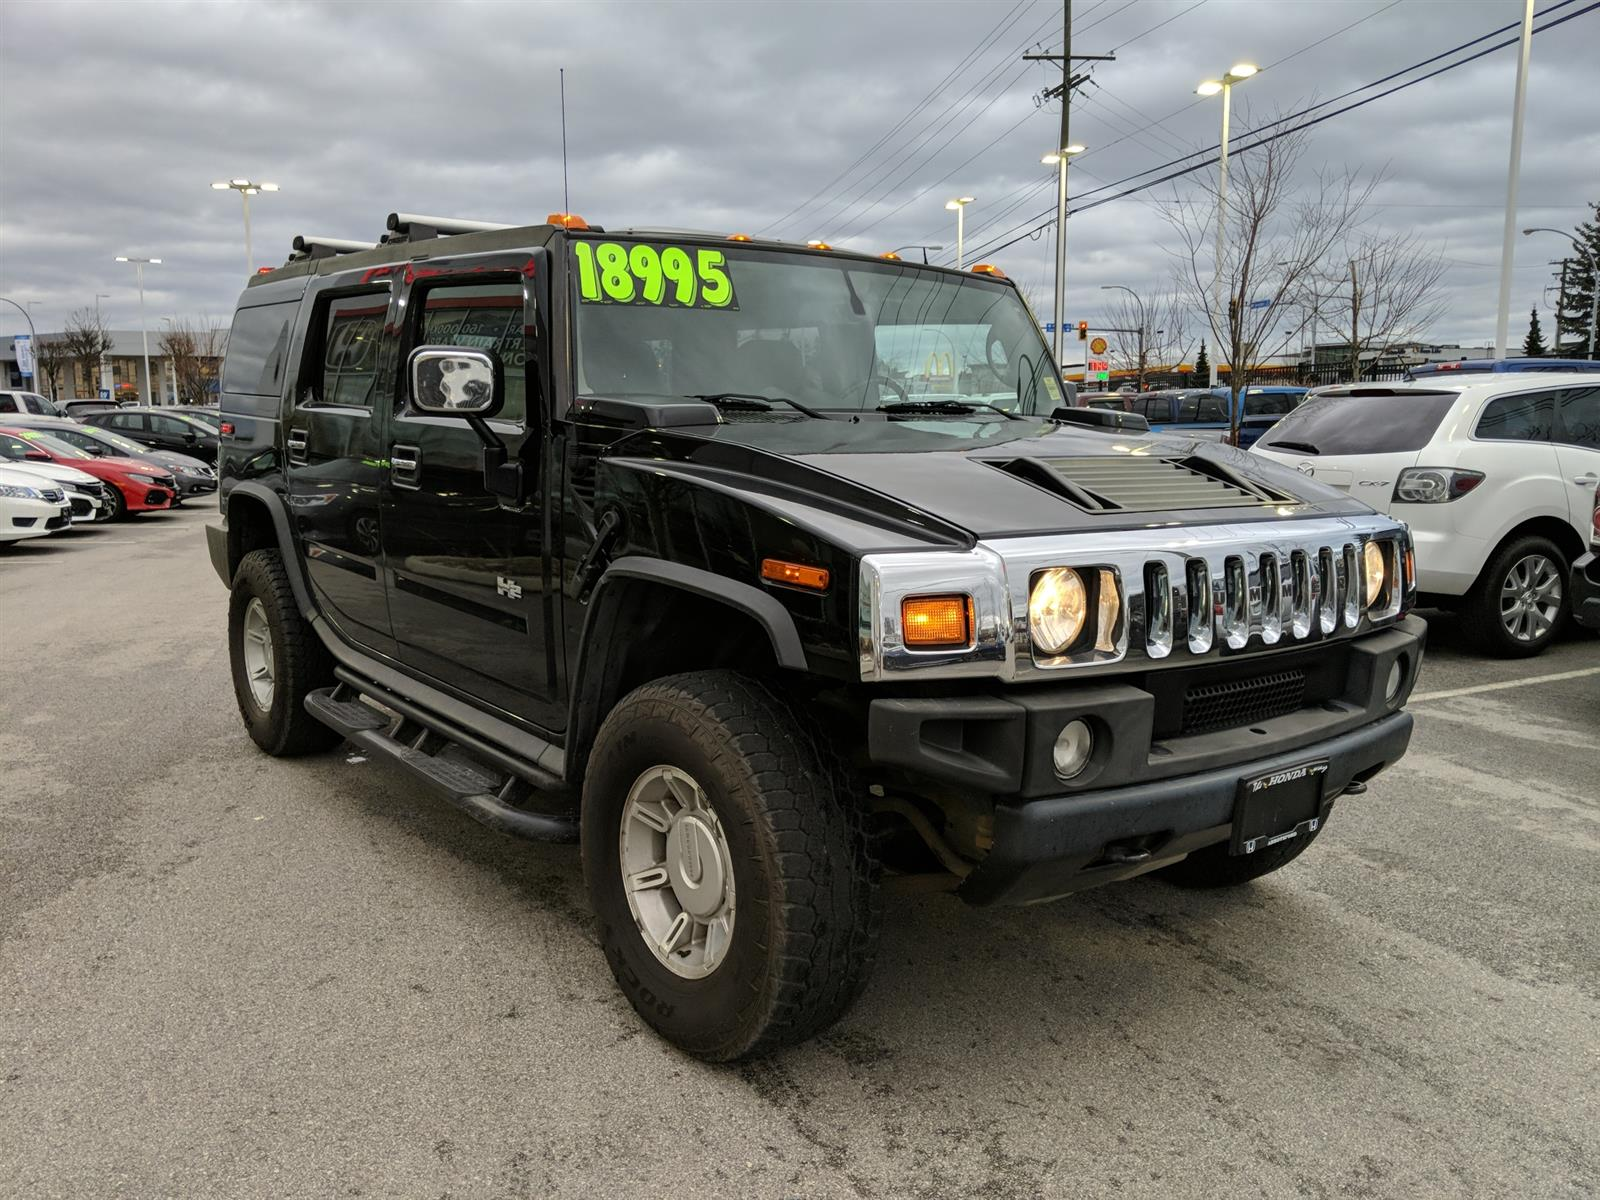 Used 2004 Hummer H2 in Abbotsford,BC